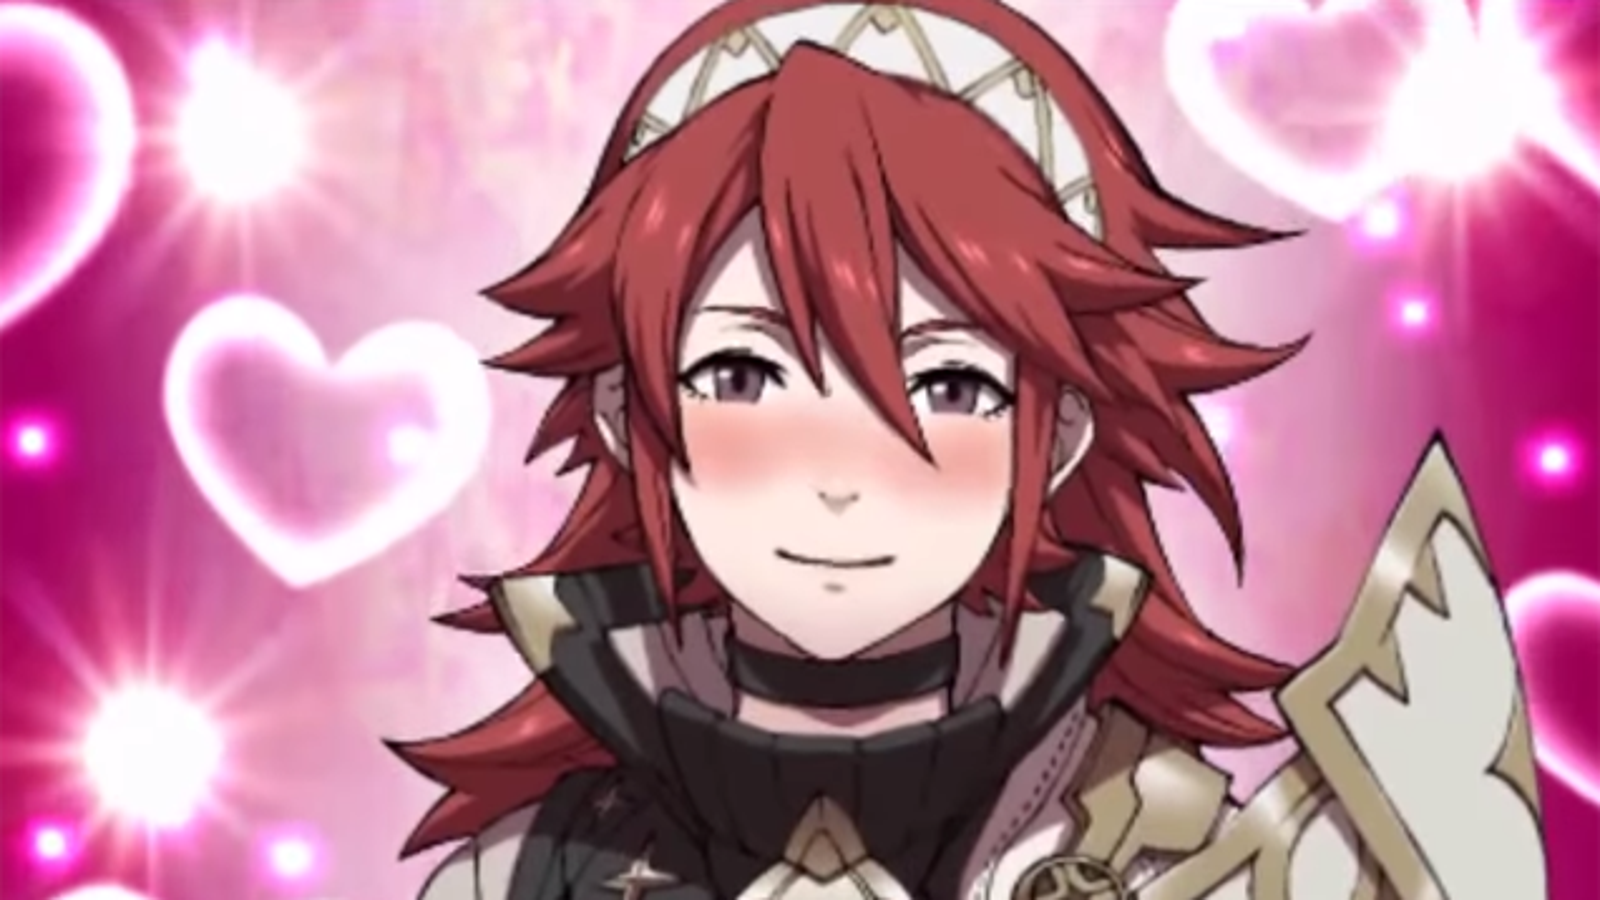 Why Some People Are Calling Fire Emblem Fates 'Homophobic'